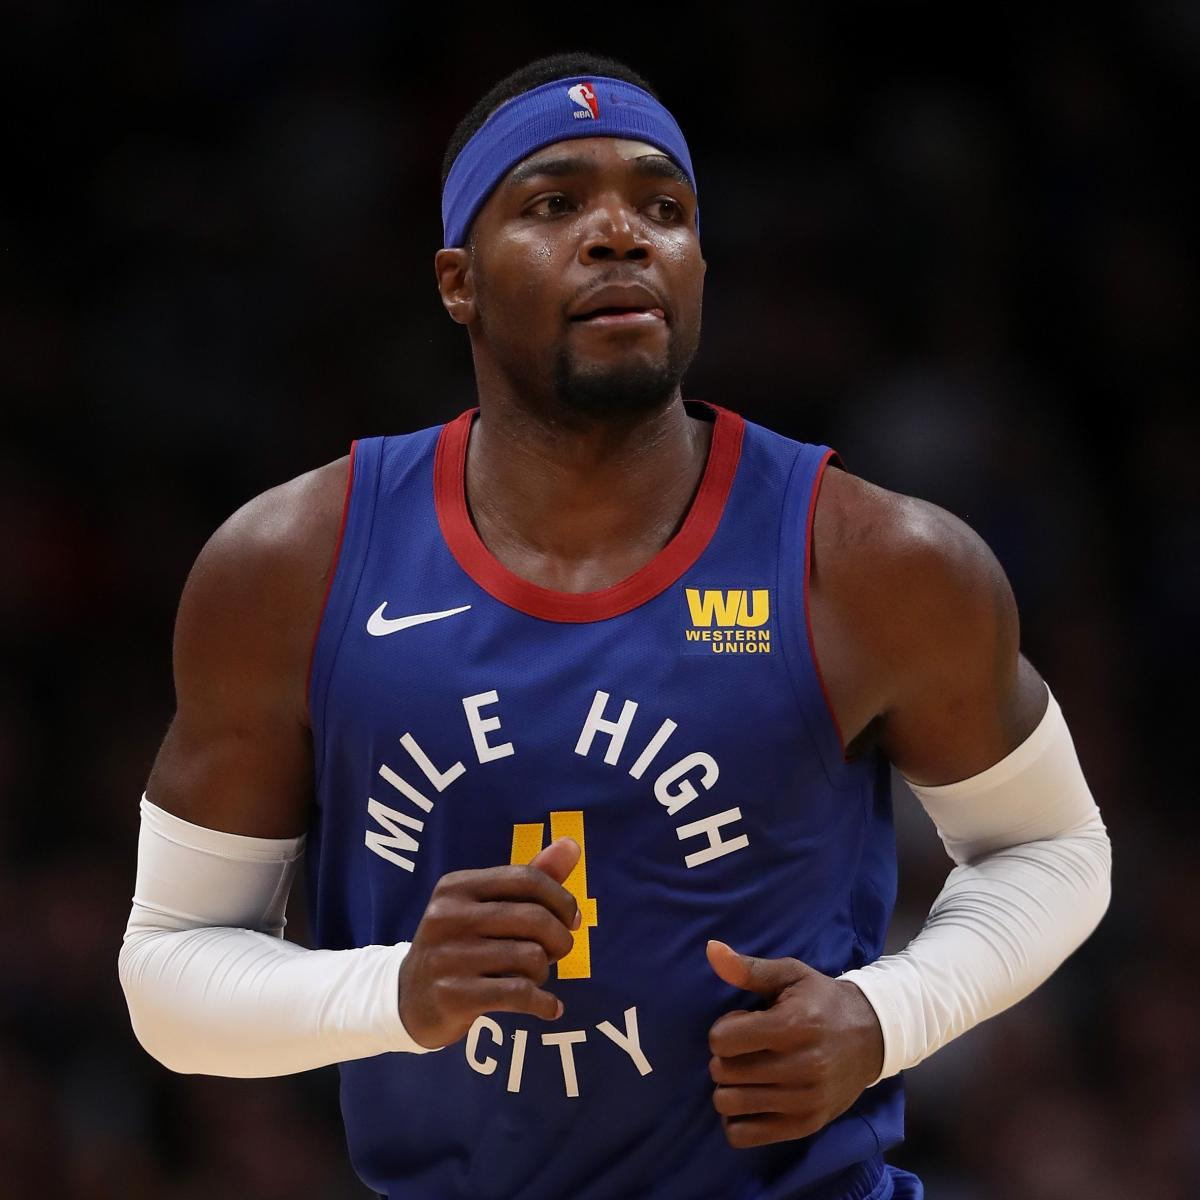 Nuggets Injury Report: Report: Nuggets' Paul Millsap Out 4-6 Weeks After Toe